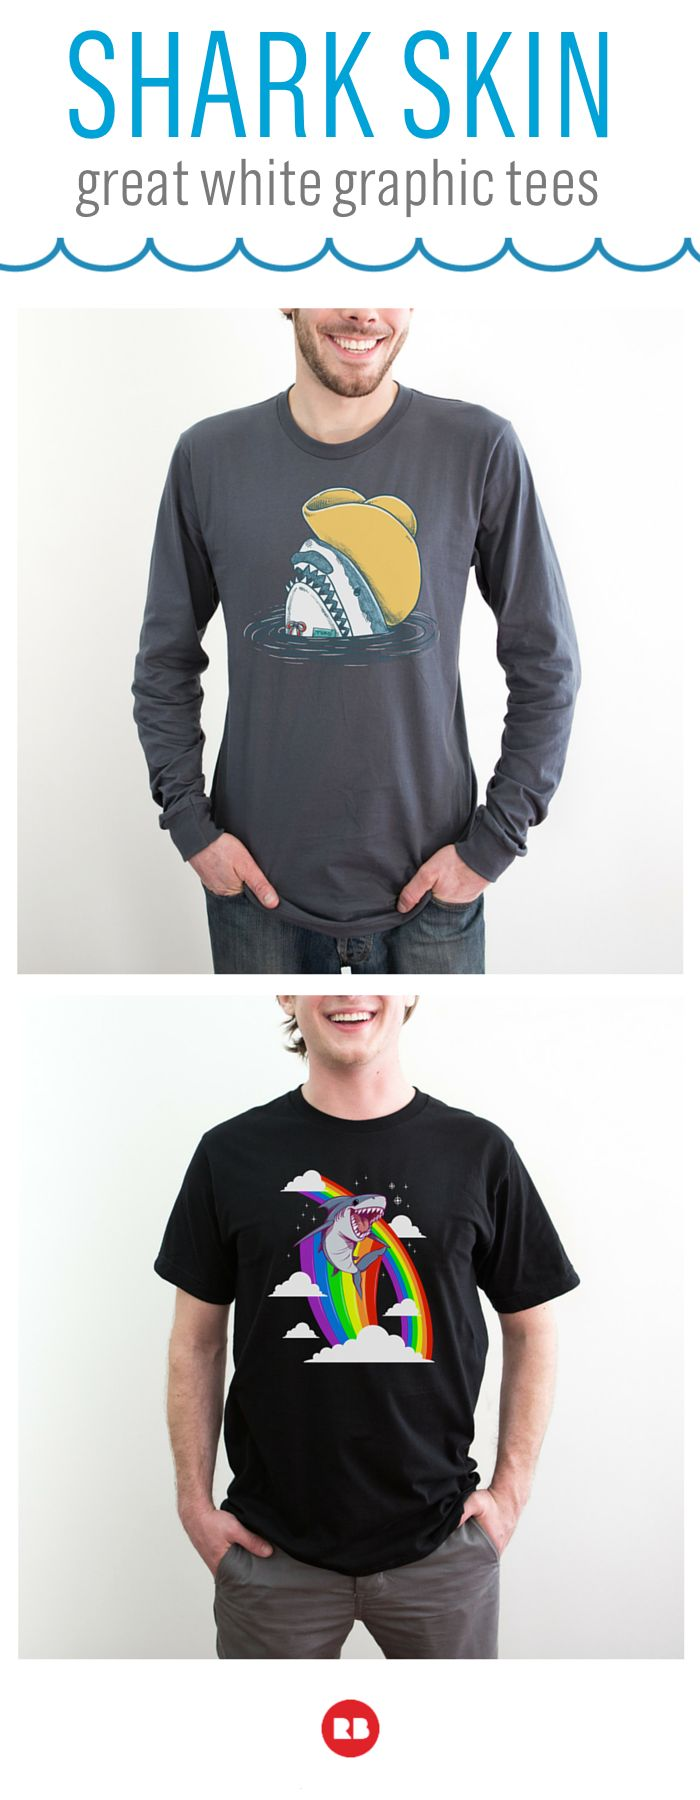 Live #sharkweek every week! Find Jaws-dropping shark tees ranging from ferocious to funny on Redbubble. Come hunt for your next great white tee  in our collection of prints from artists around the world.